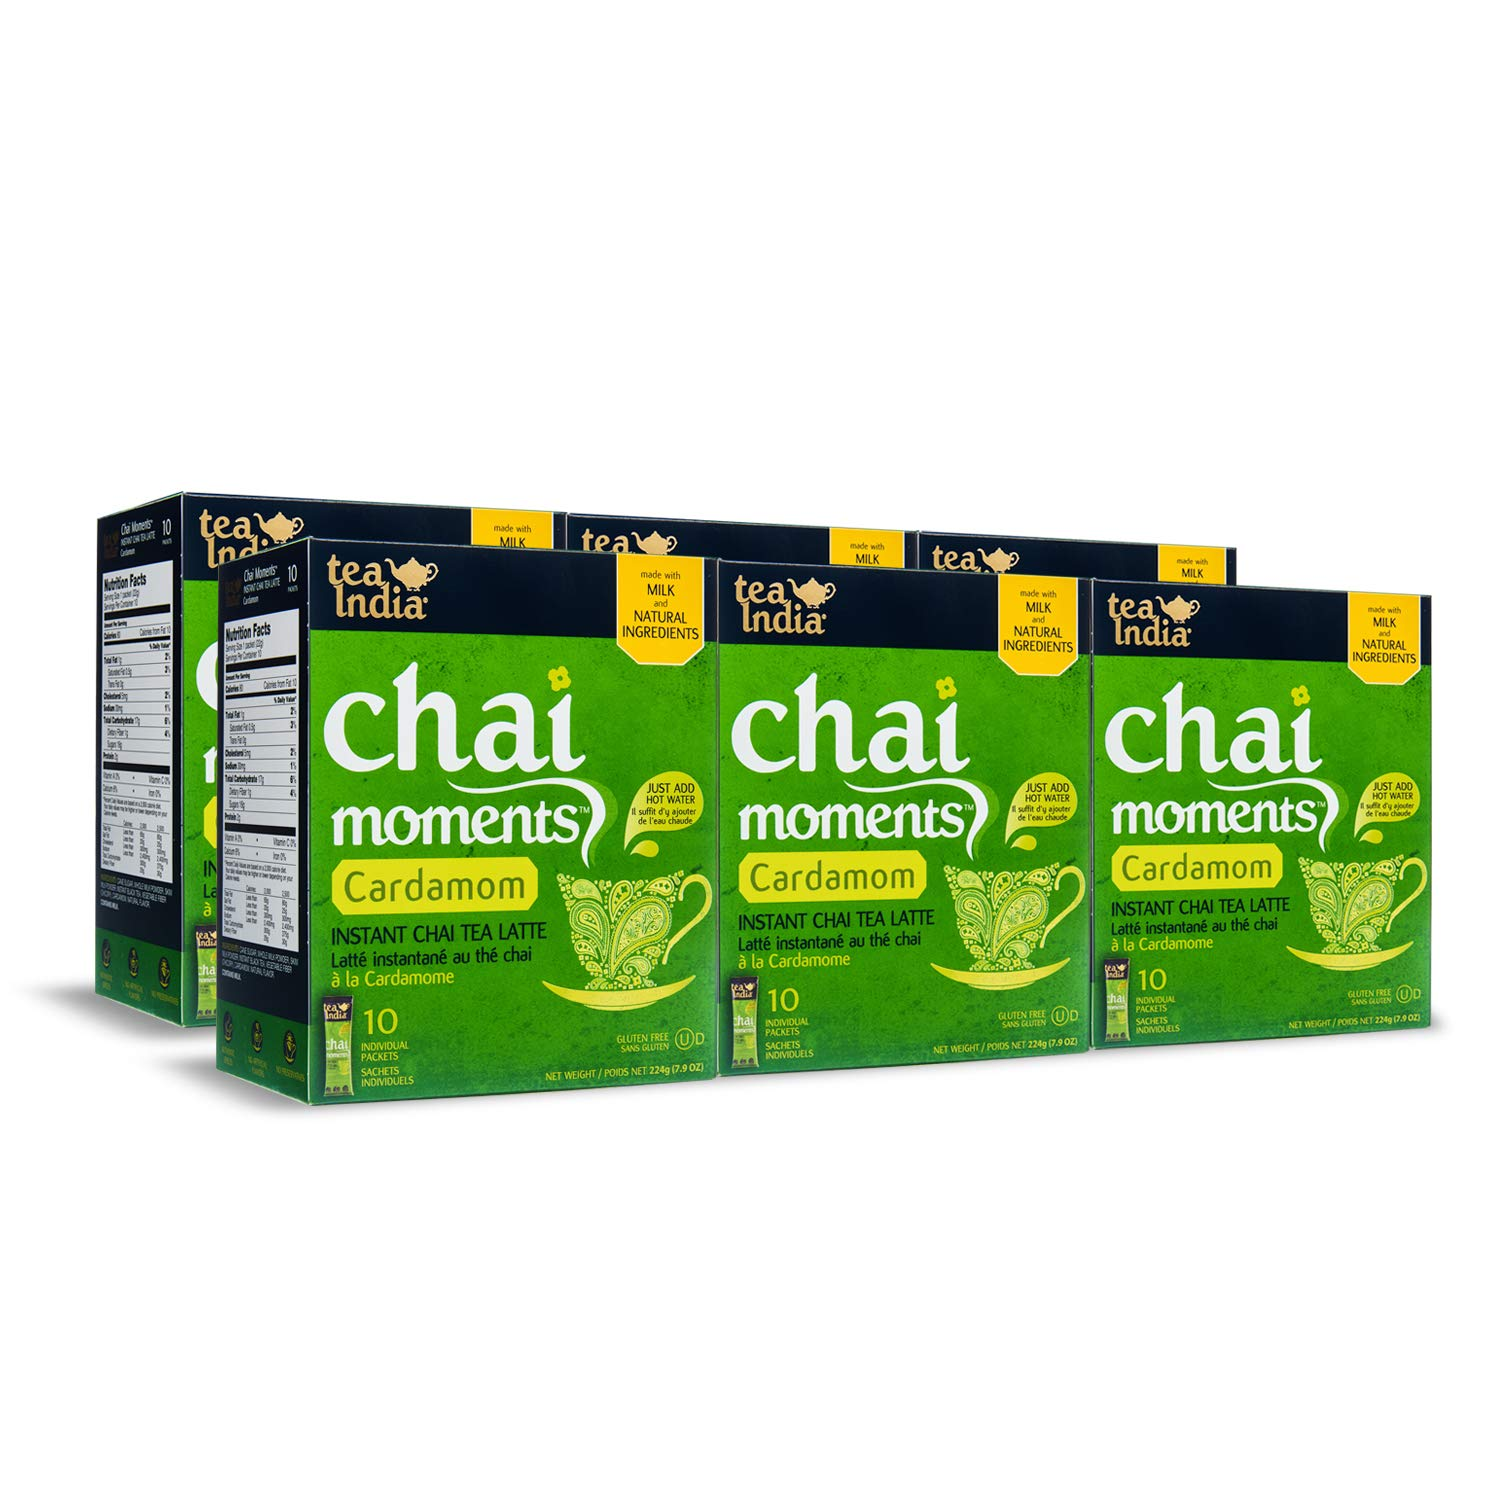 Tea India Chai Moments, Cardamom, 10 Count (Pack of 6) by Tea India